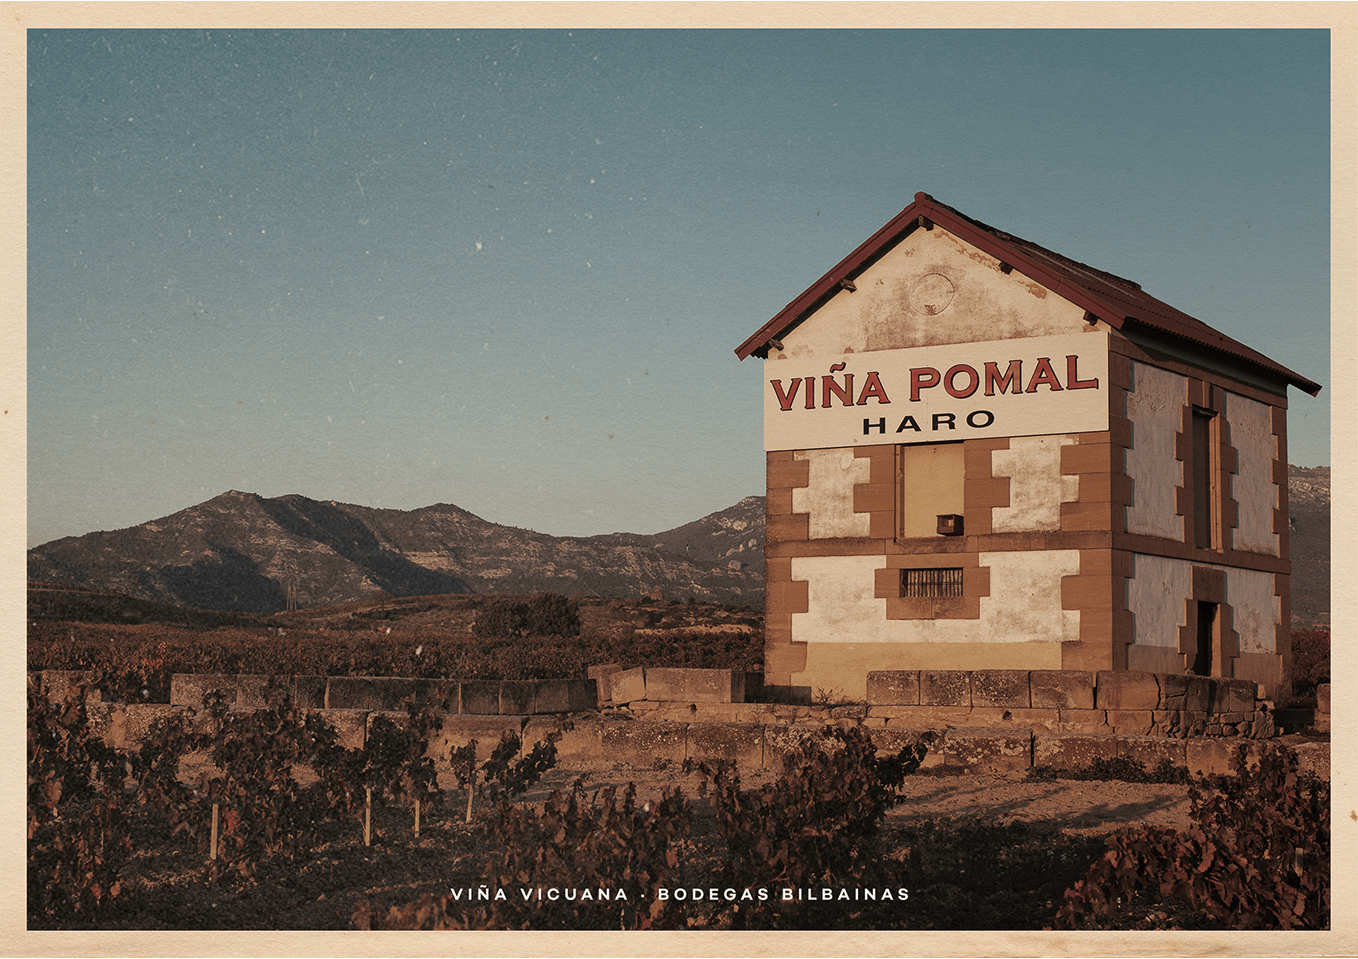 Greetings from Viña Pomal